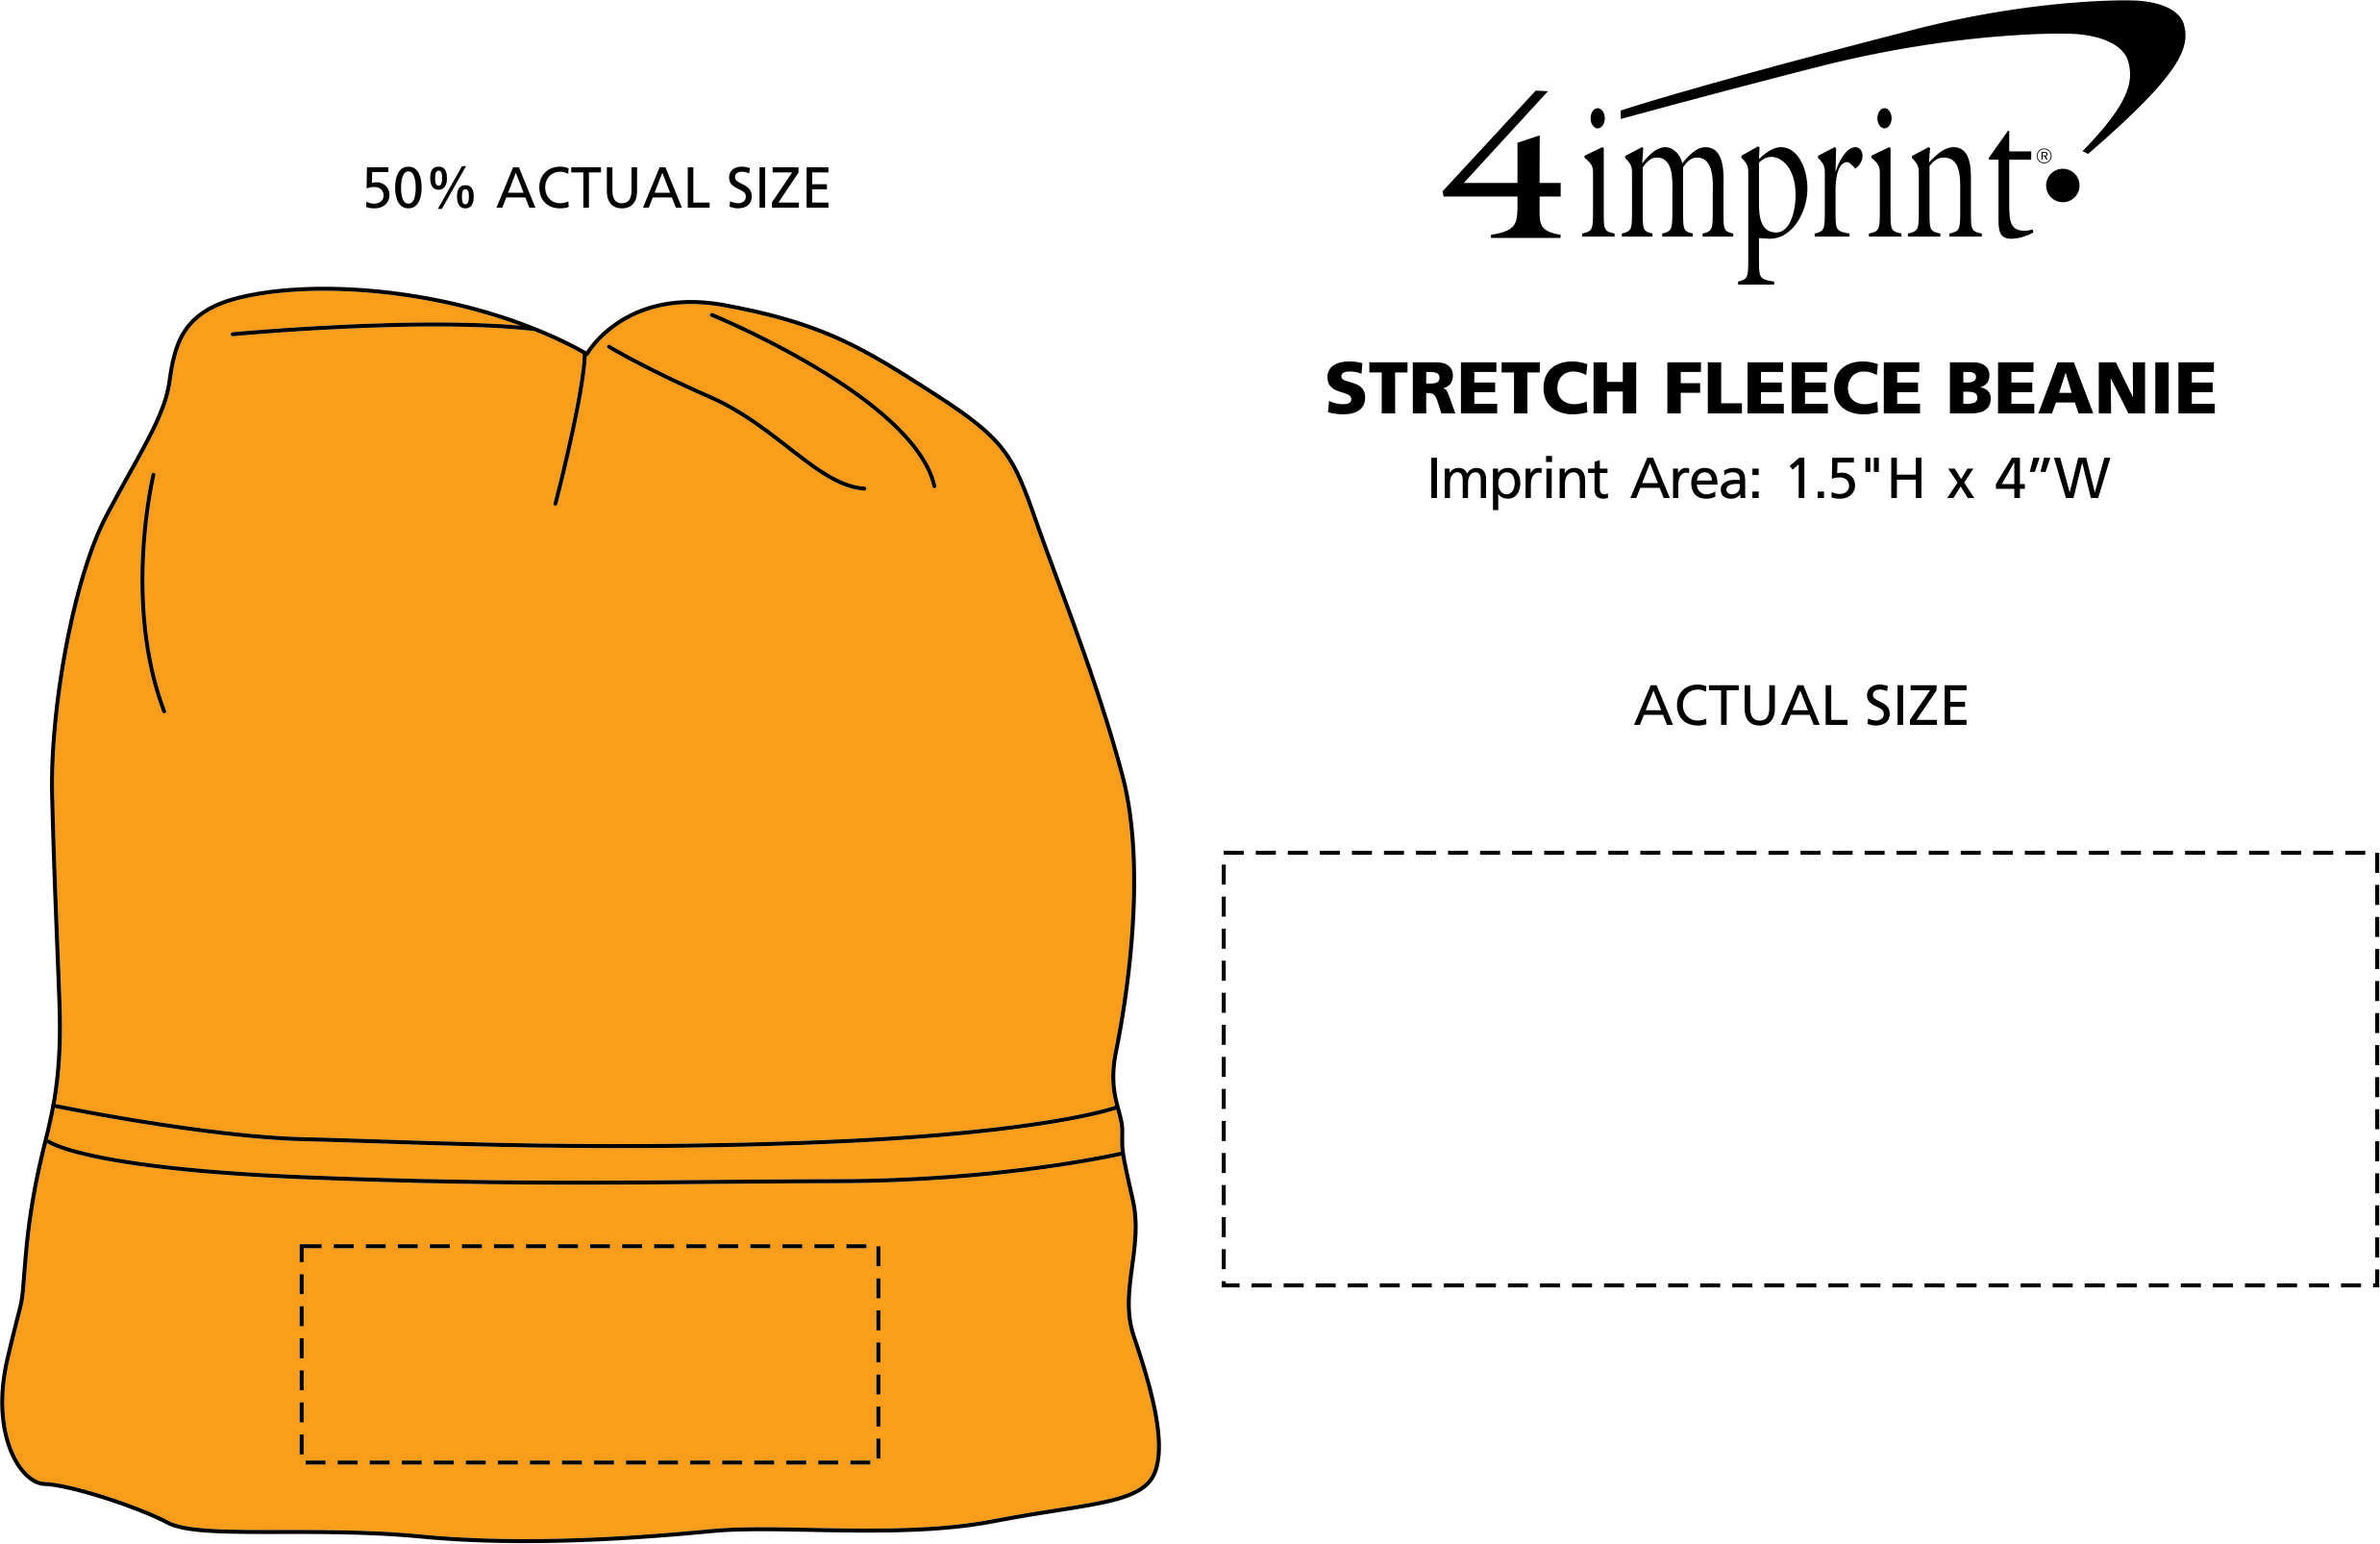 Imprint Area of Stretch Fleece Beanie